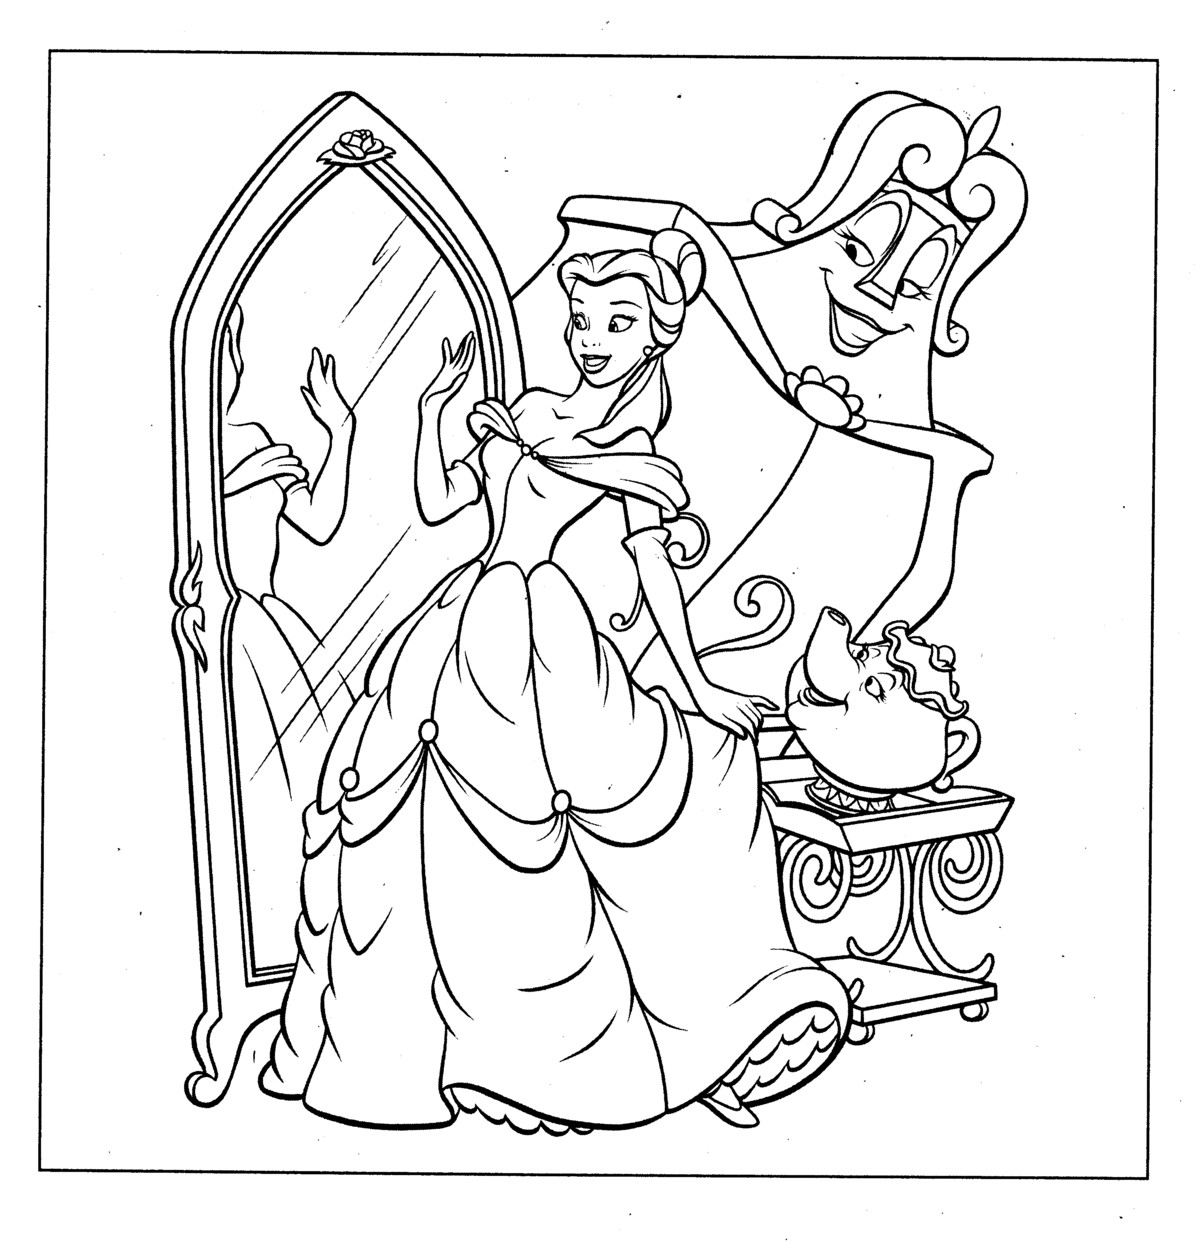 coloring pages of princess belle get this princess belle girls coloring pages to print princess of coloring belle pages